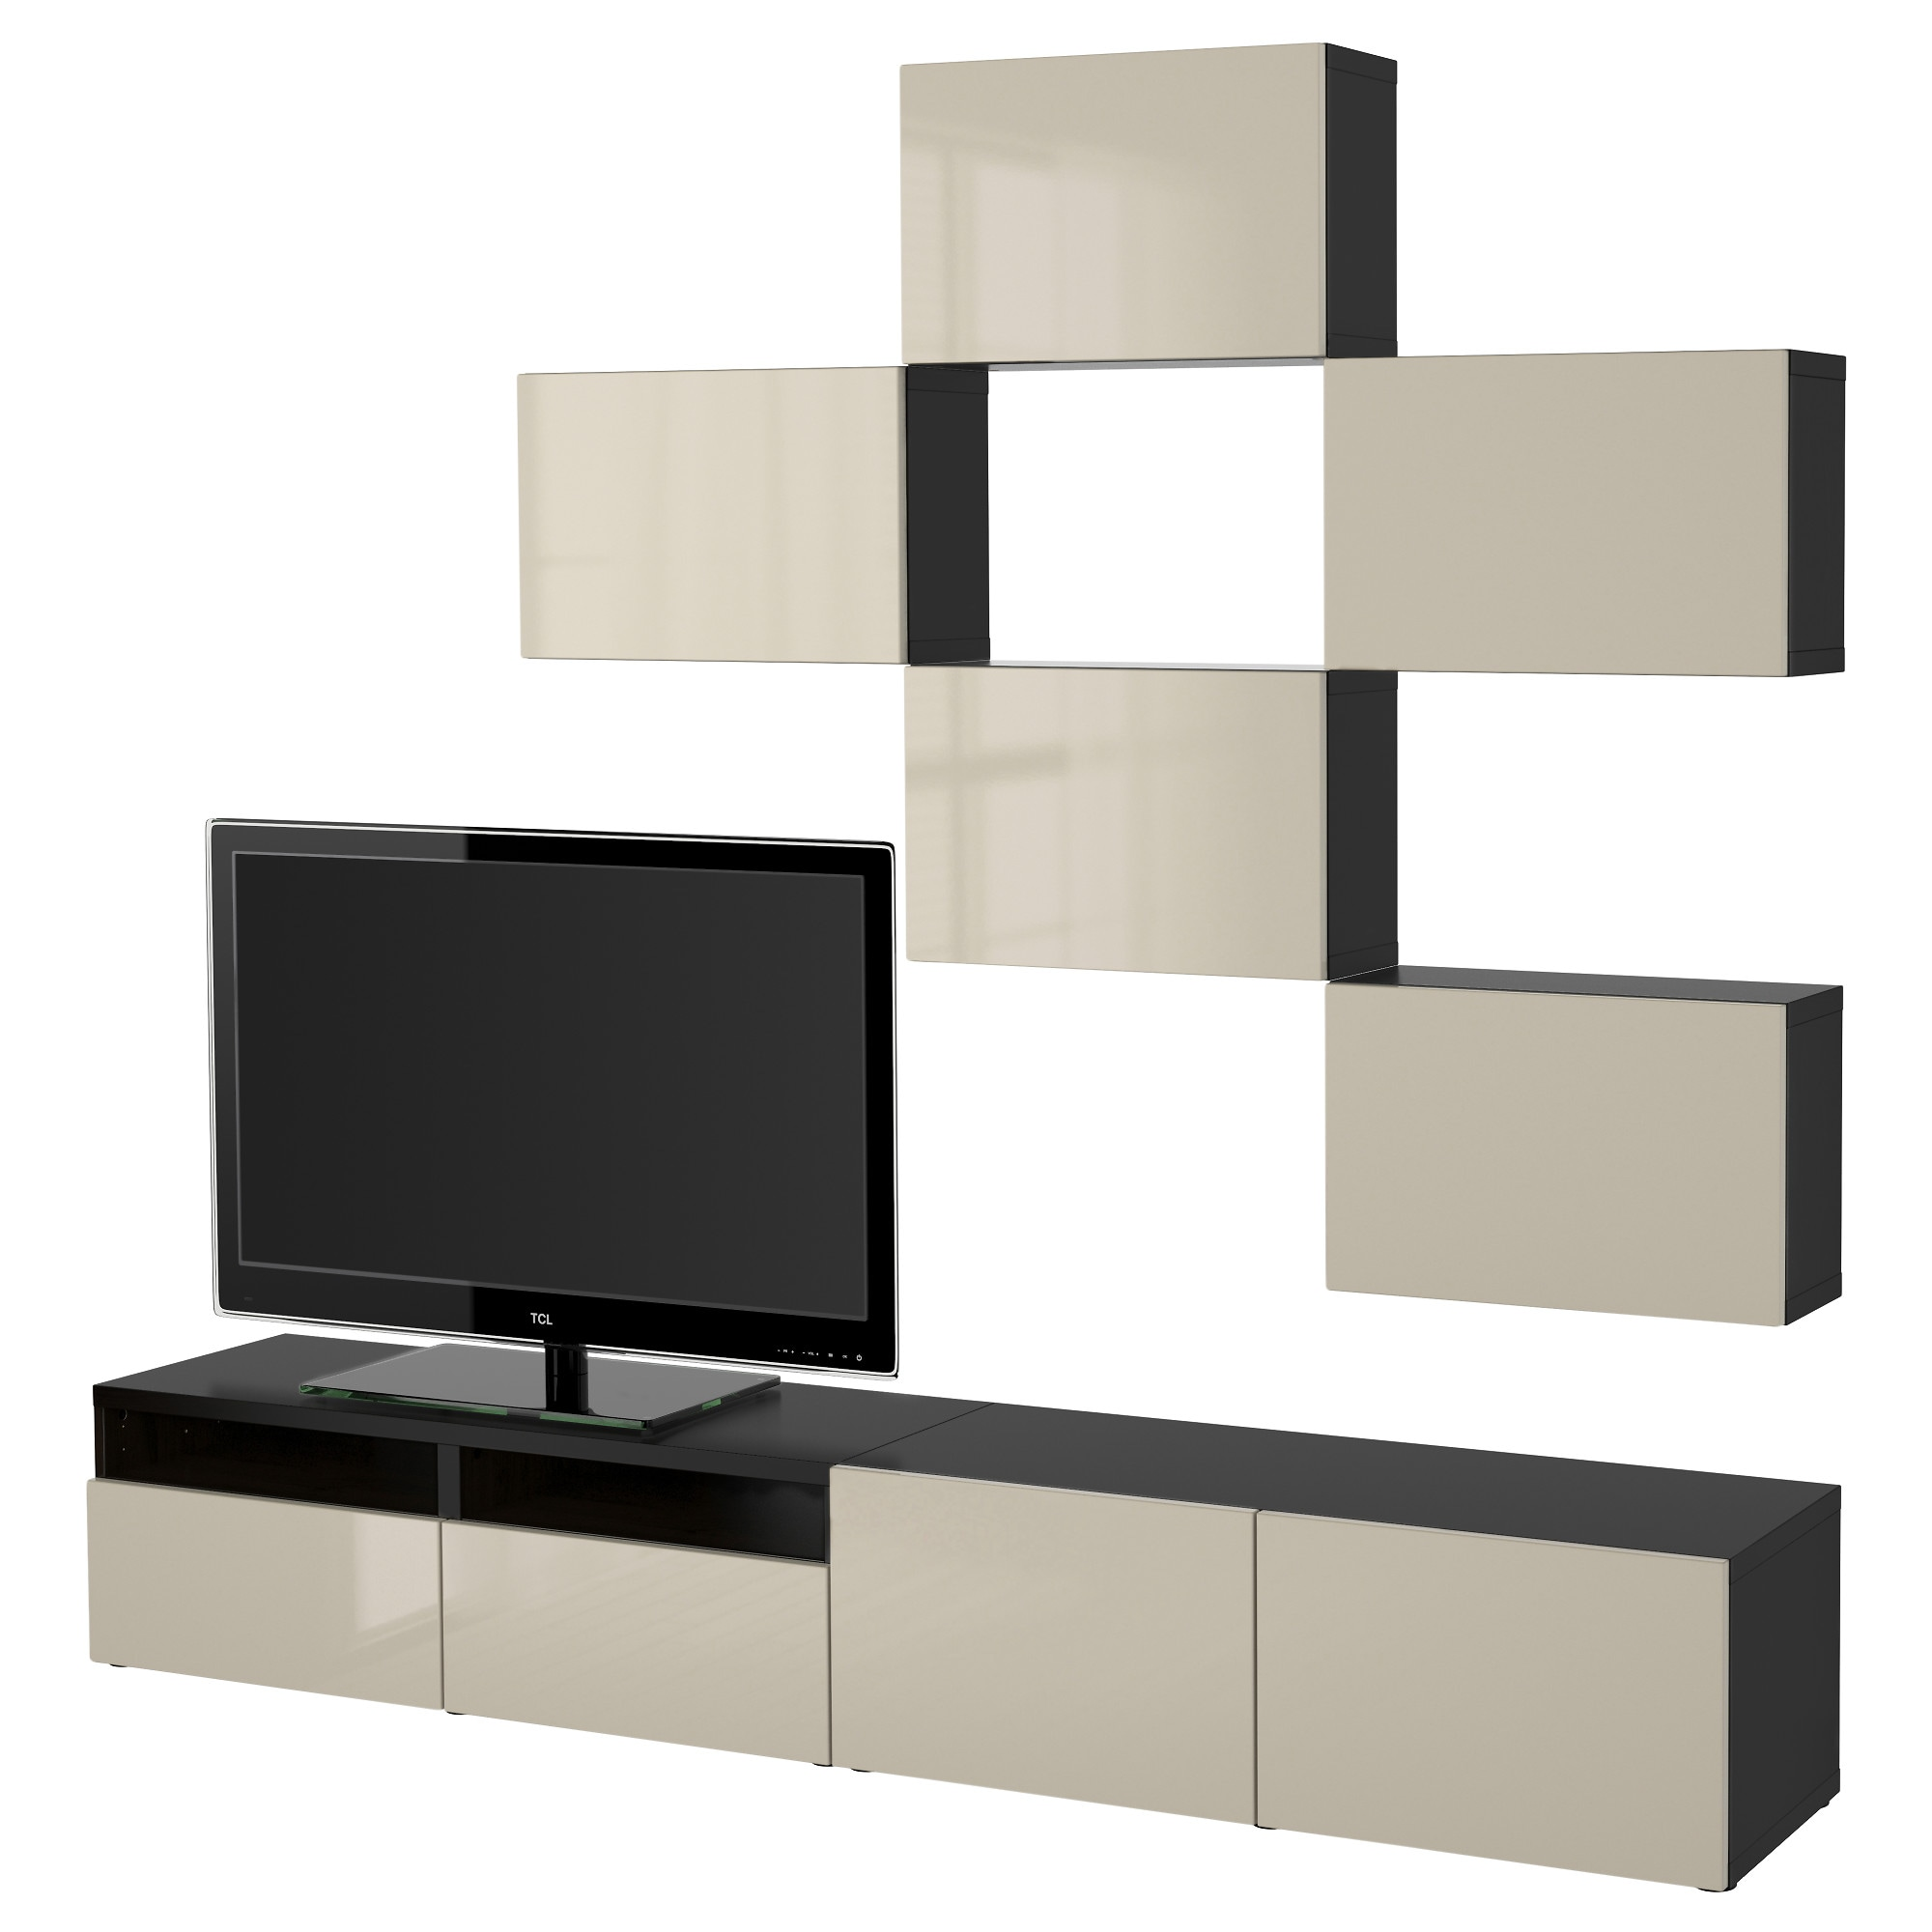 Ikea Meuble Tele - Best Tv Storage Combination Black Brown Selsviken High Gloss [mjhdah]http://arbeitsmed.info/wp-content/uploads/2017/12/meuble-tv-lack-excellent-meuble-tv-lack-with-meuble-tv-lack-full-avec-ikea-meuble-tv-et-superbe-meuble-tv-hifi-ikea-1-meuble-tele-ikea-lack-meuble-t233l233-892×1000-ikea-meuble-tv-7-892×1000.jpg